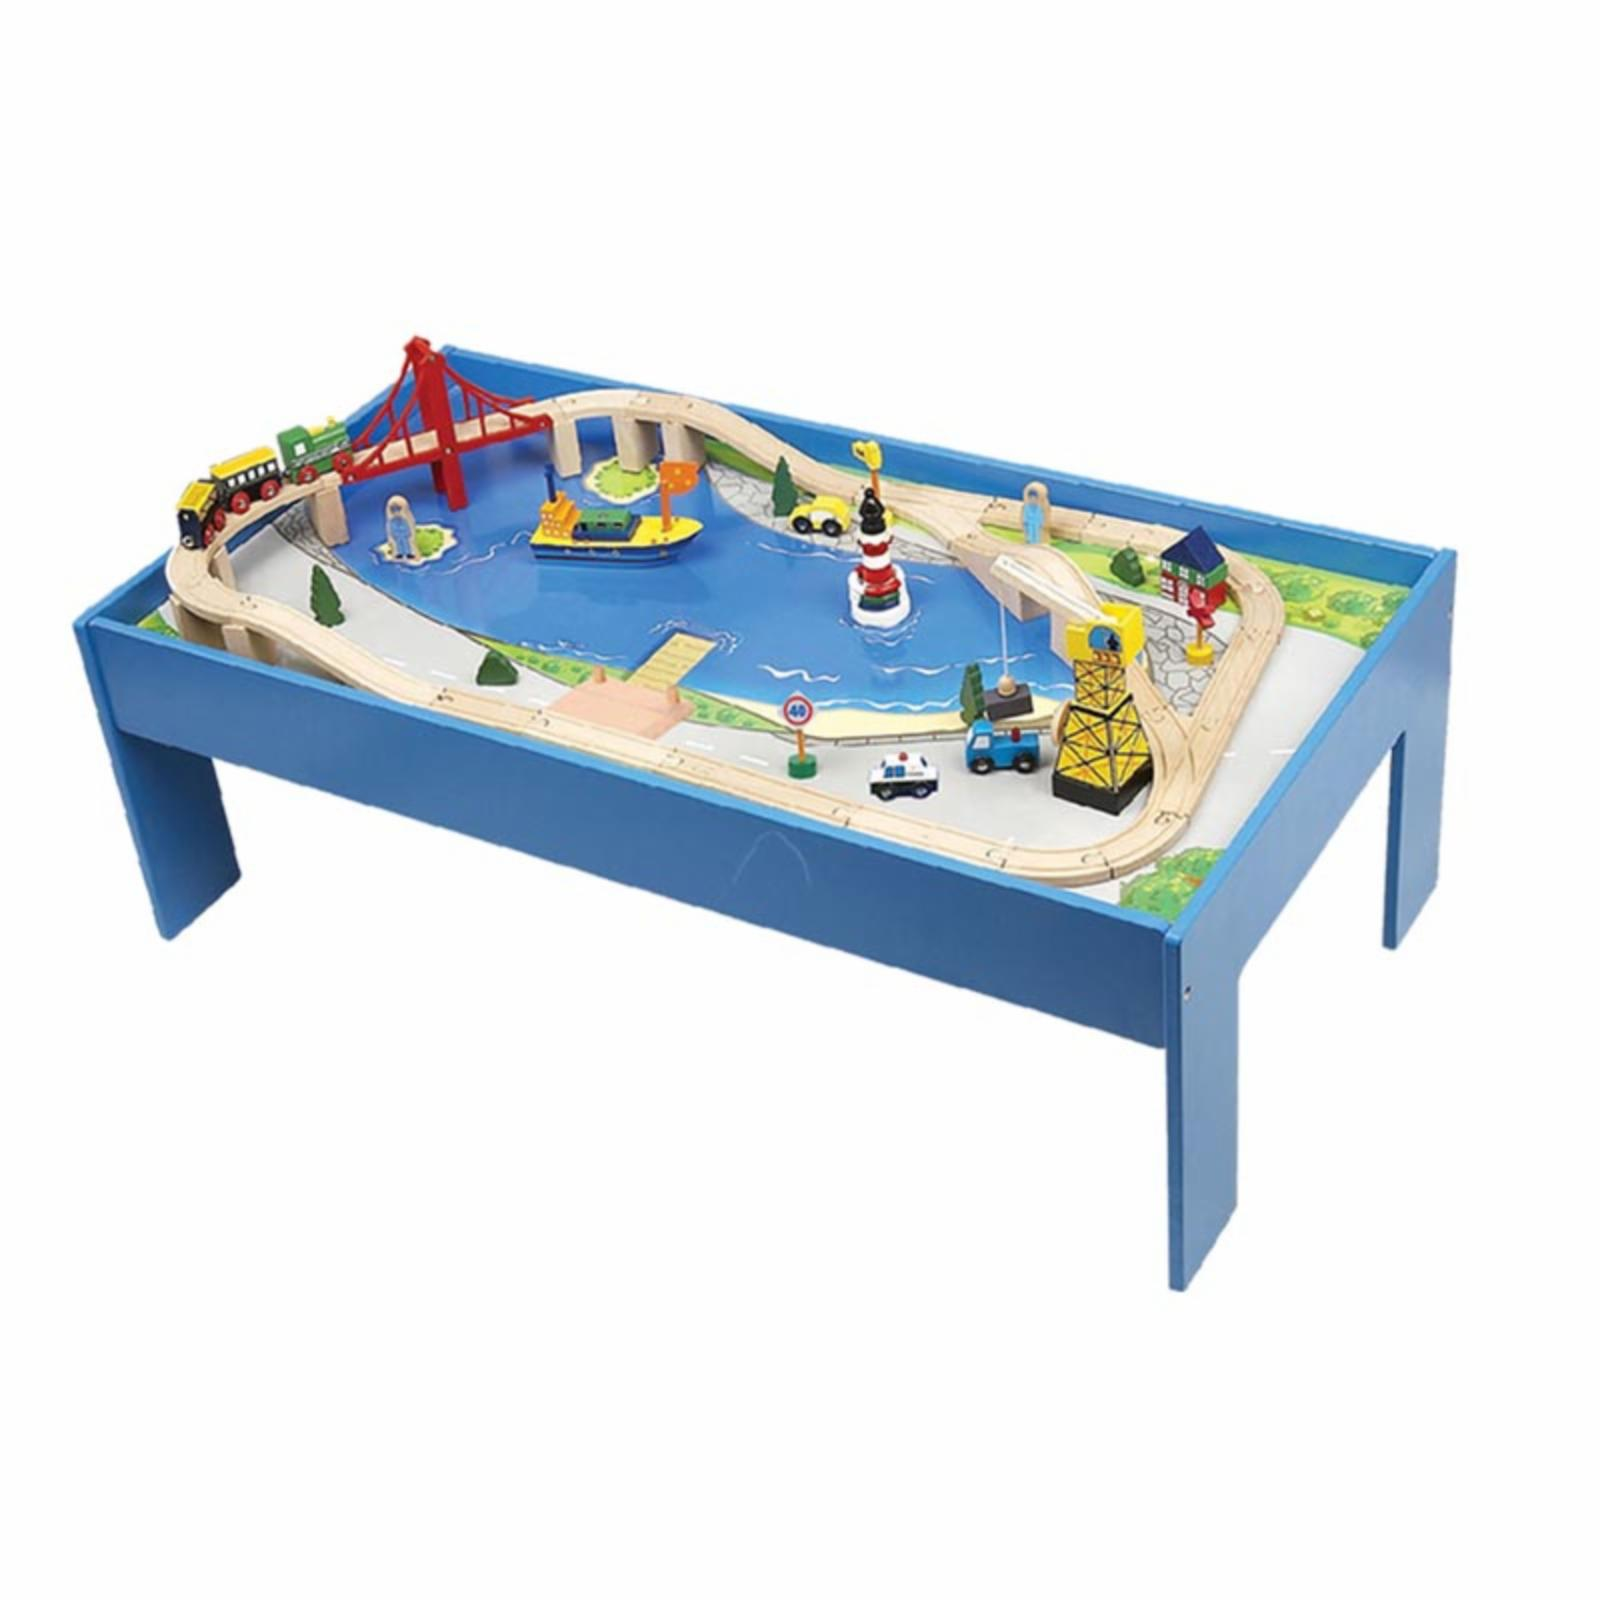 Ocean Train Table with Train Set - 96002